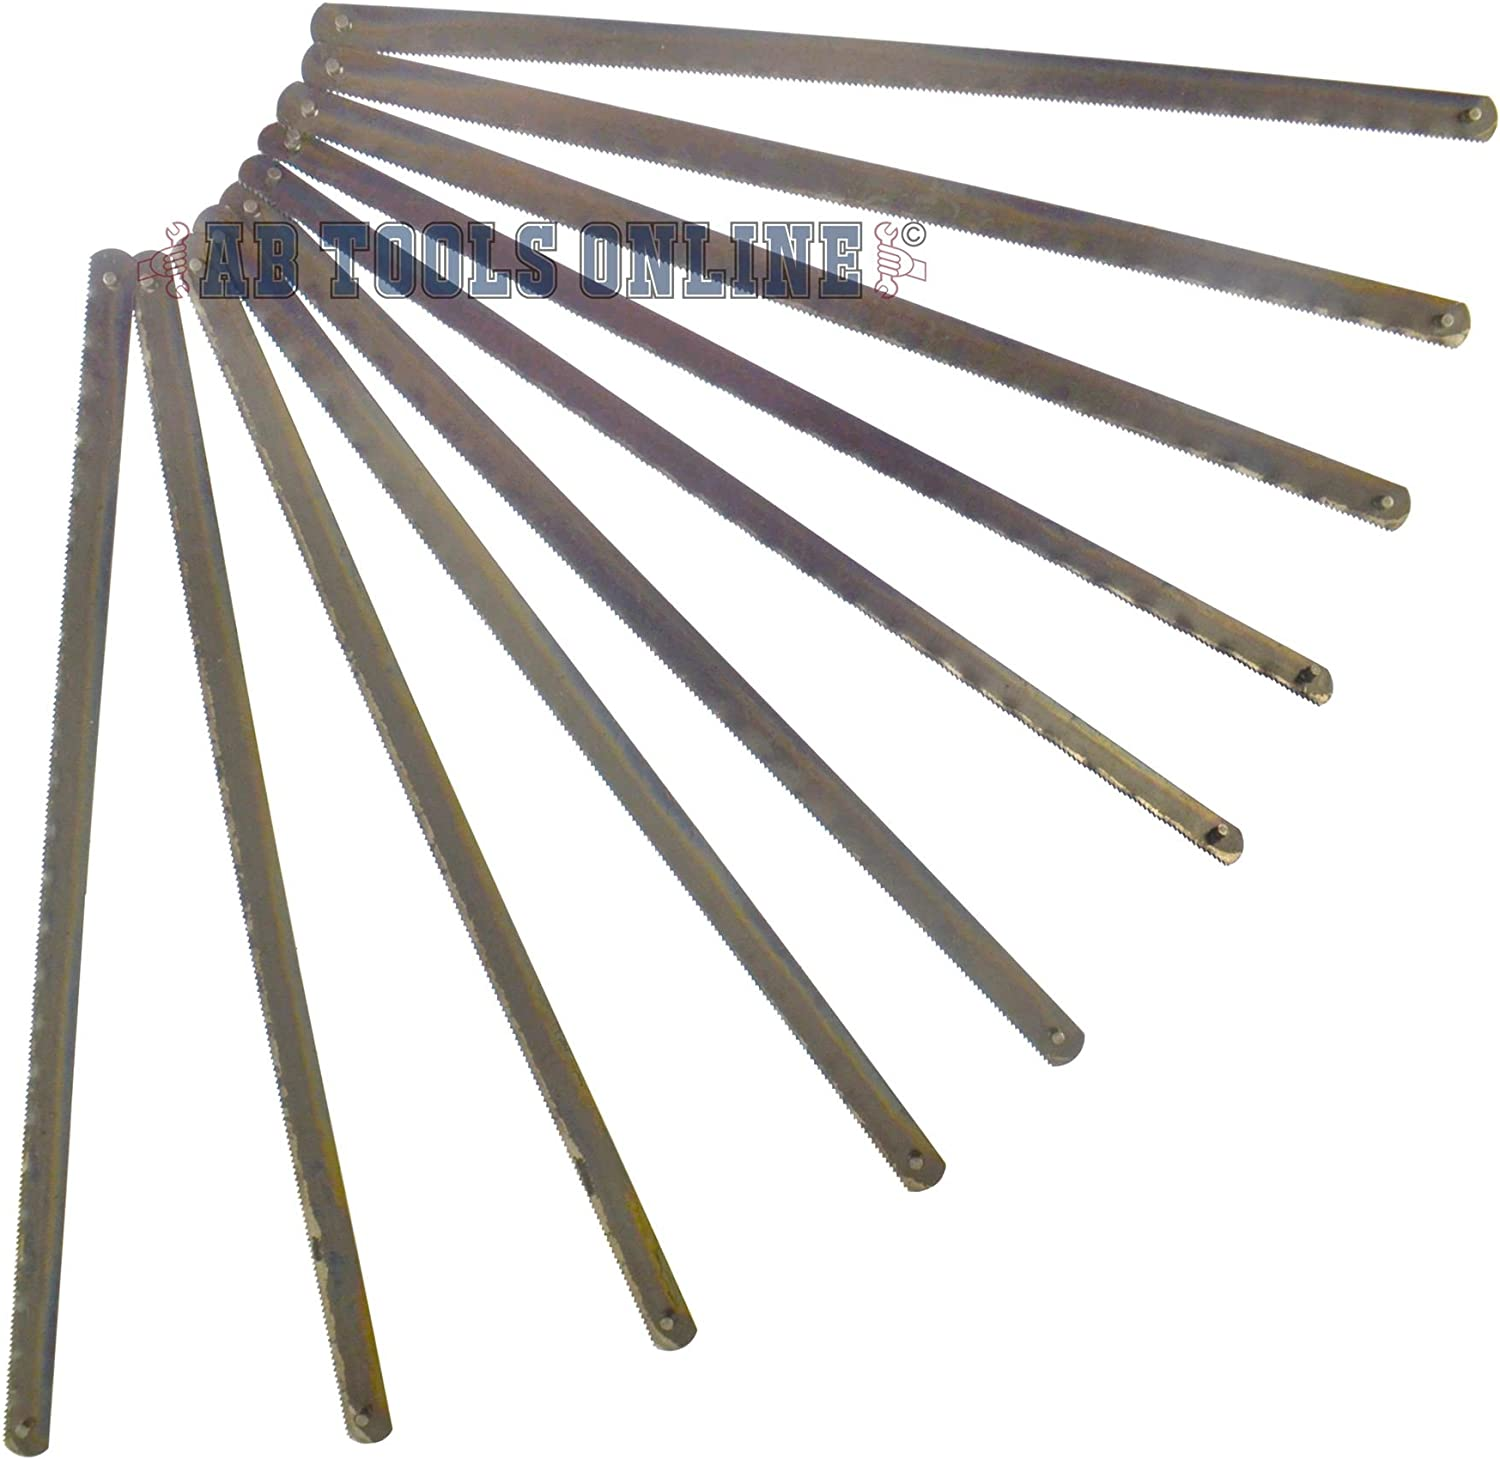 """5 or 10 Pack Of Junior Hacksaw Blades REPLACEMENT Blade 150MM 6/"""" INCH 1"""